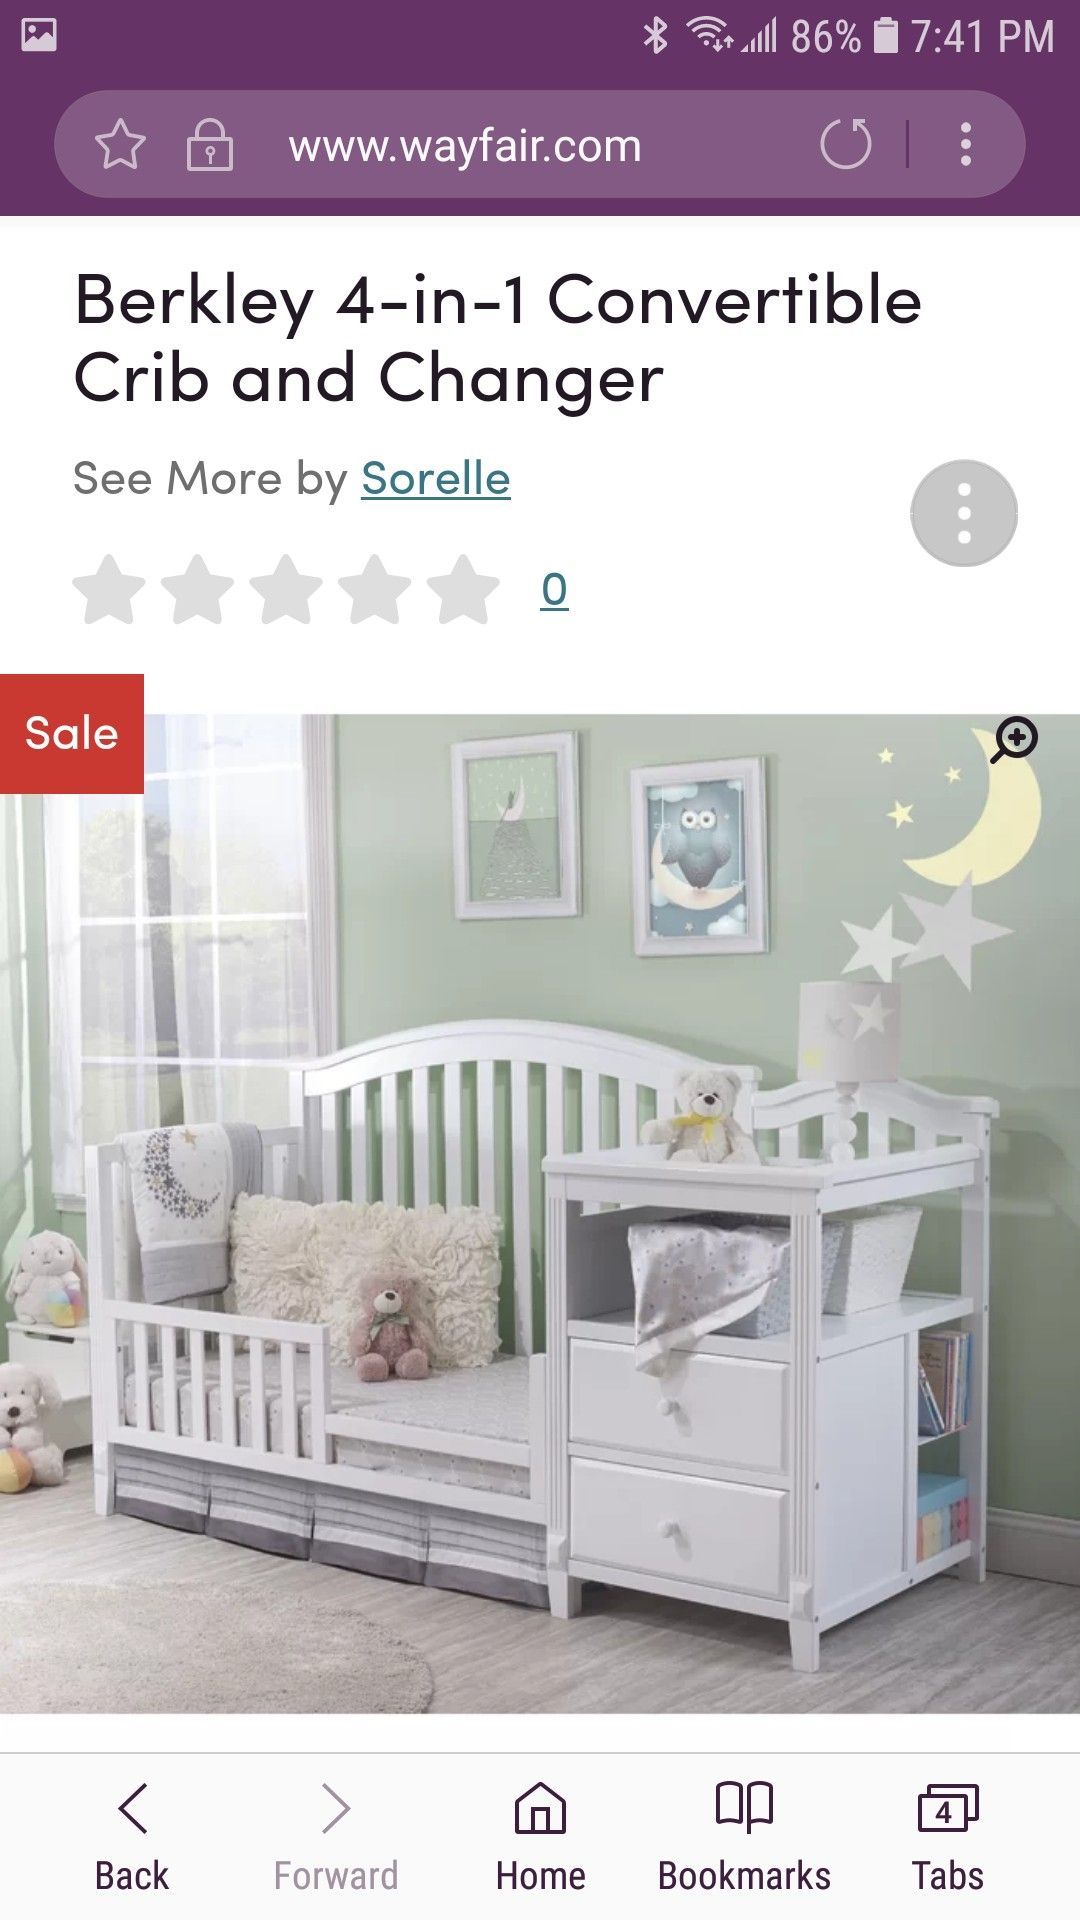 Pin By Jen Slone On Nursery Ideas Convertible Crib Toddler Bed Cribs [ 1920 x 1080 Pixel ]